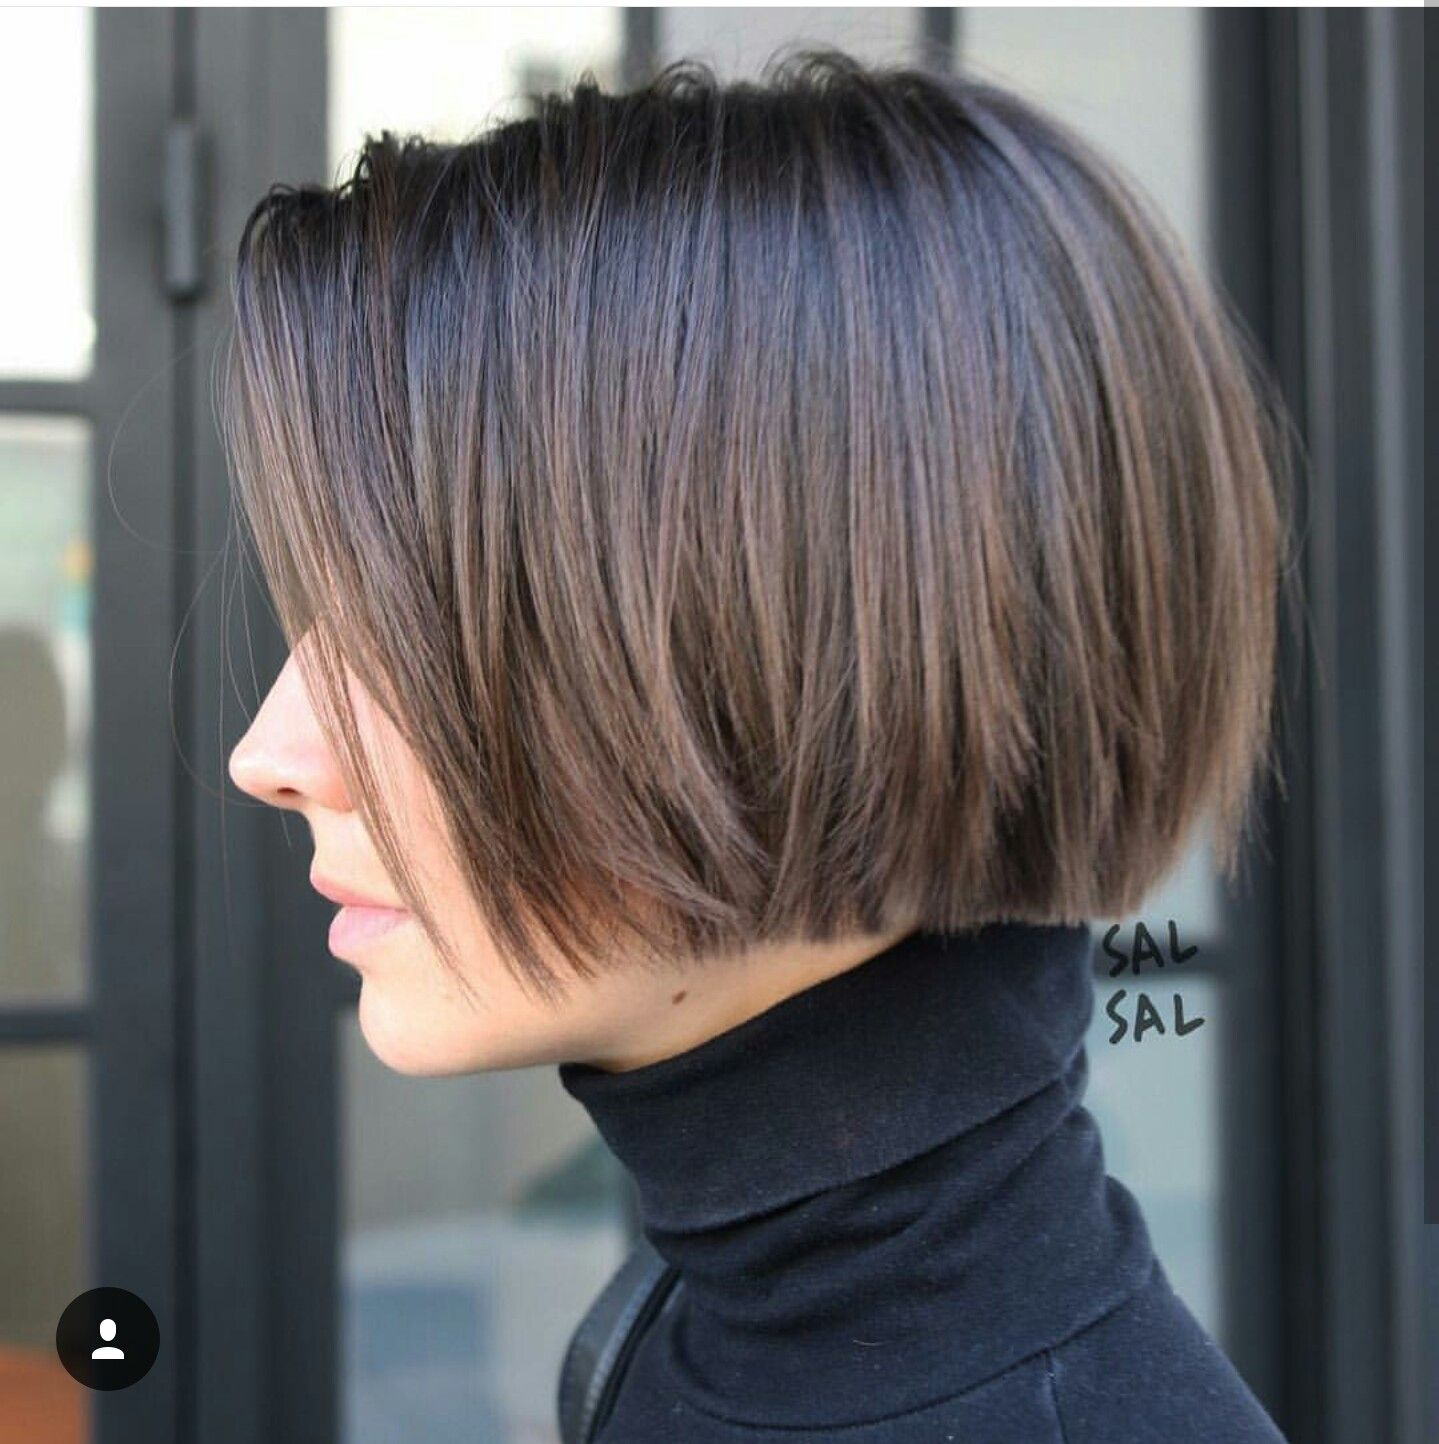 Short blunt haircut   Hair with flare  Pinterest  Blunt